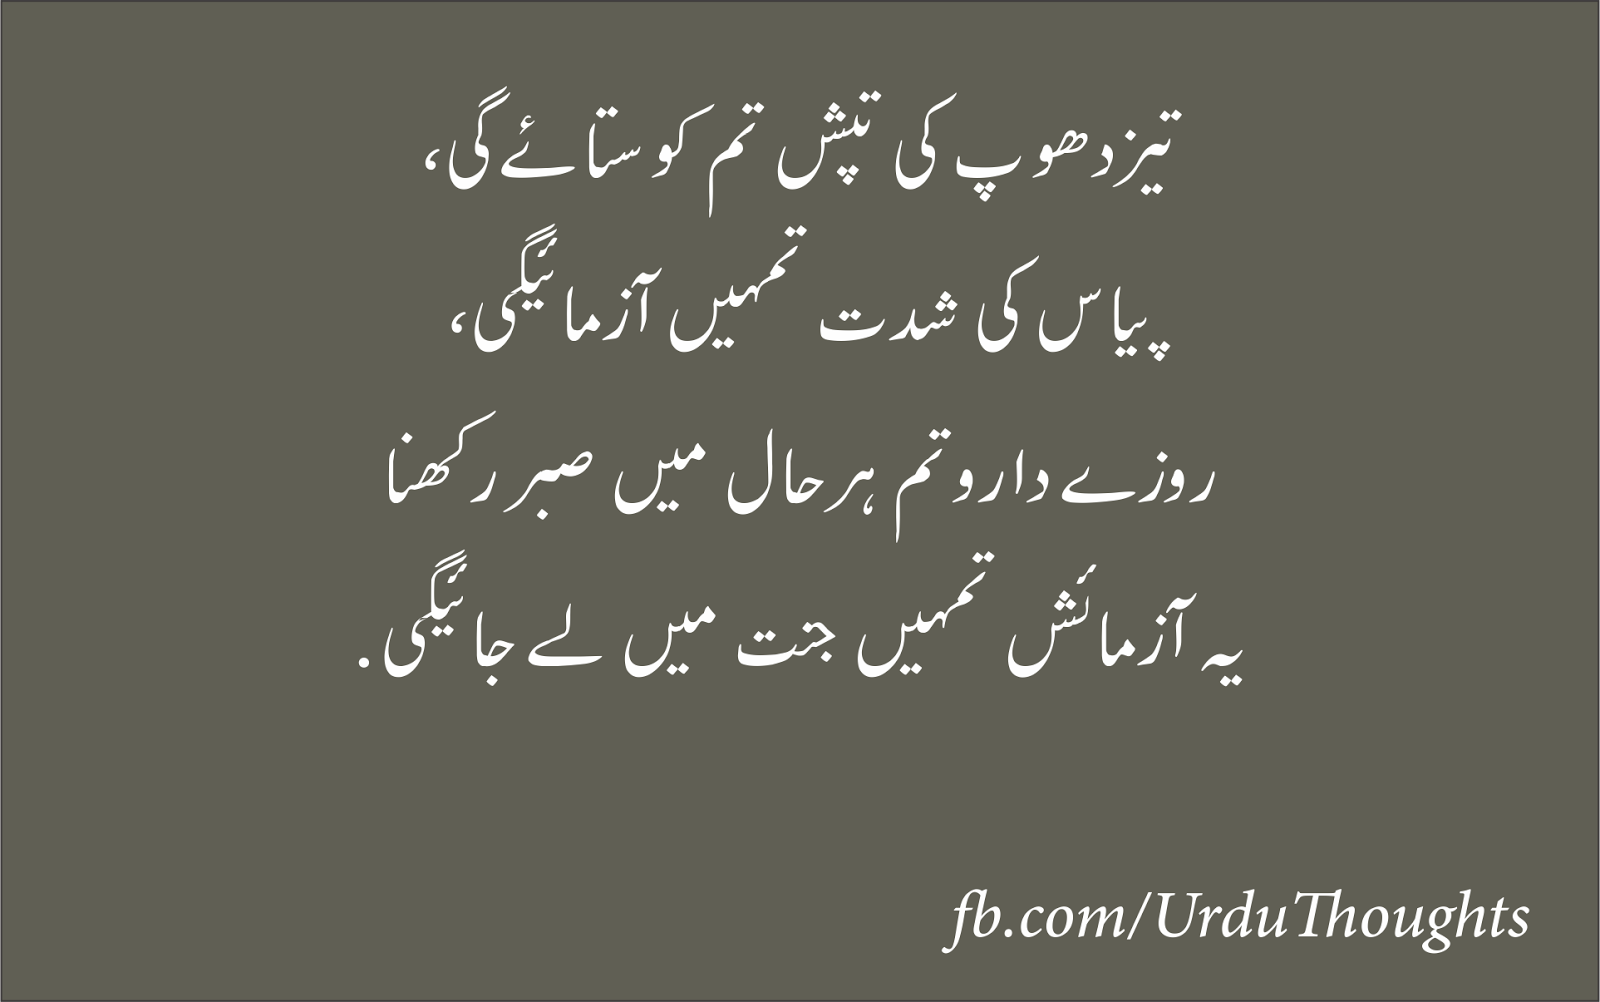 Sad Wallpaper Quotes In Urdu Amazing Urdu Quotes Pics Mahekte Alfaz Post In Image